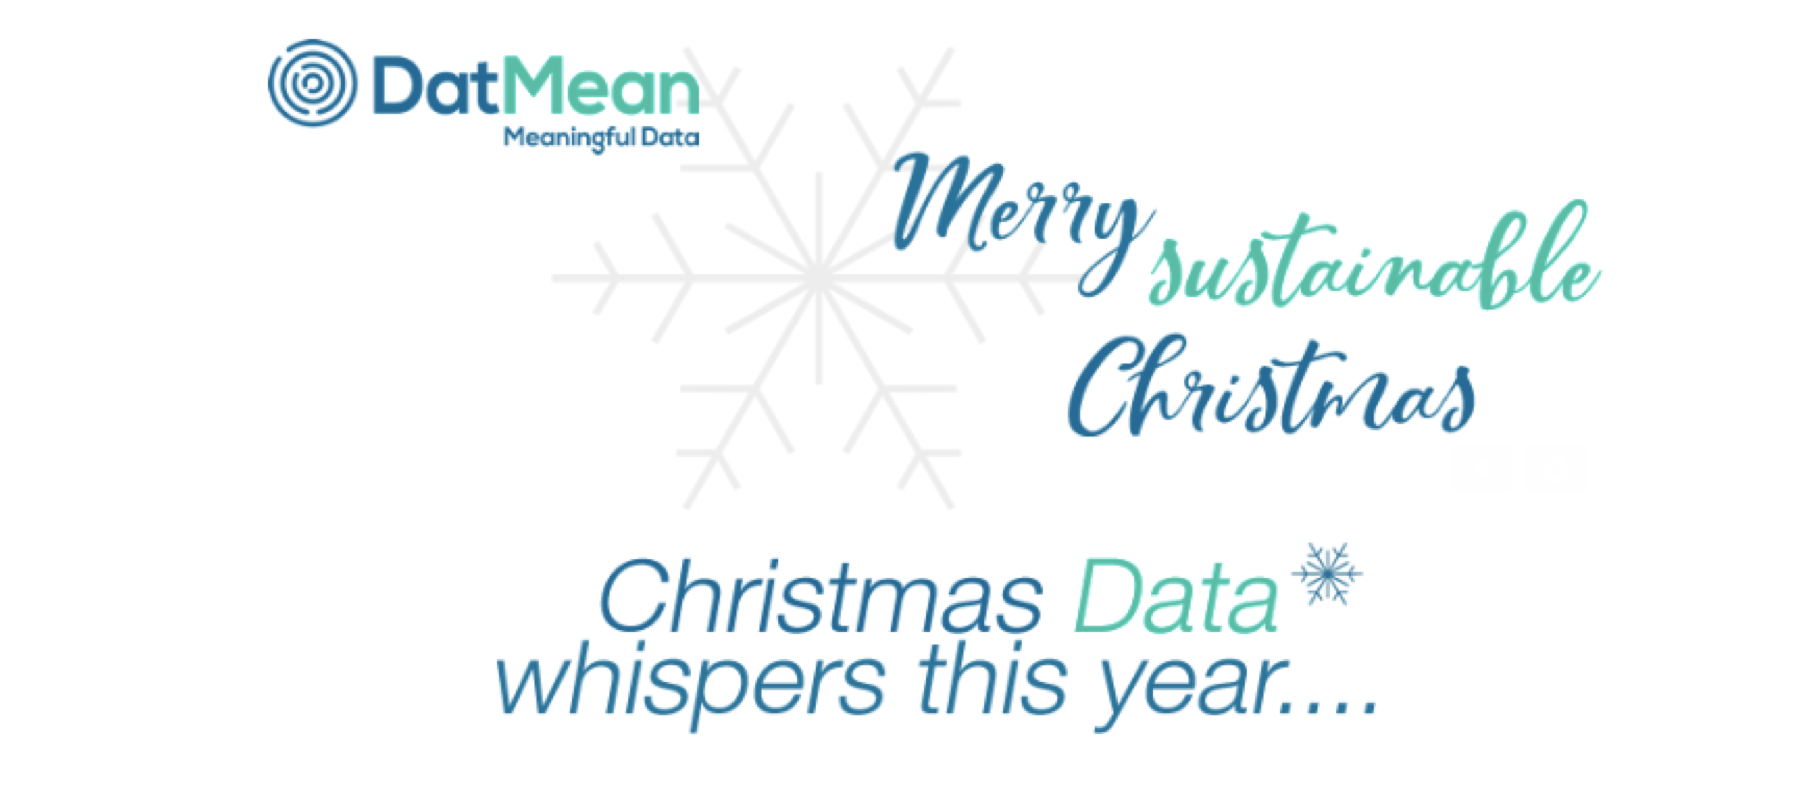 Christmas Data whispers this year…*